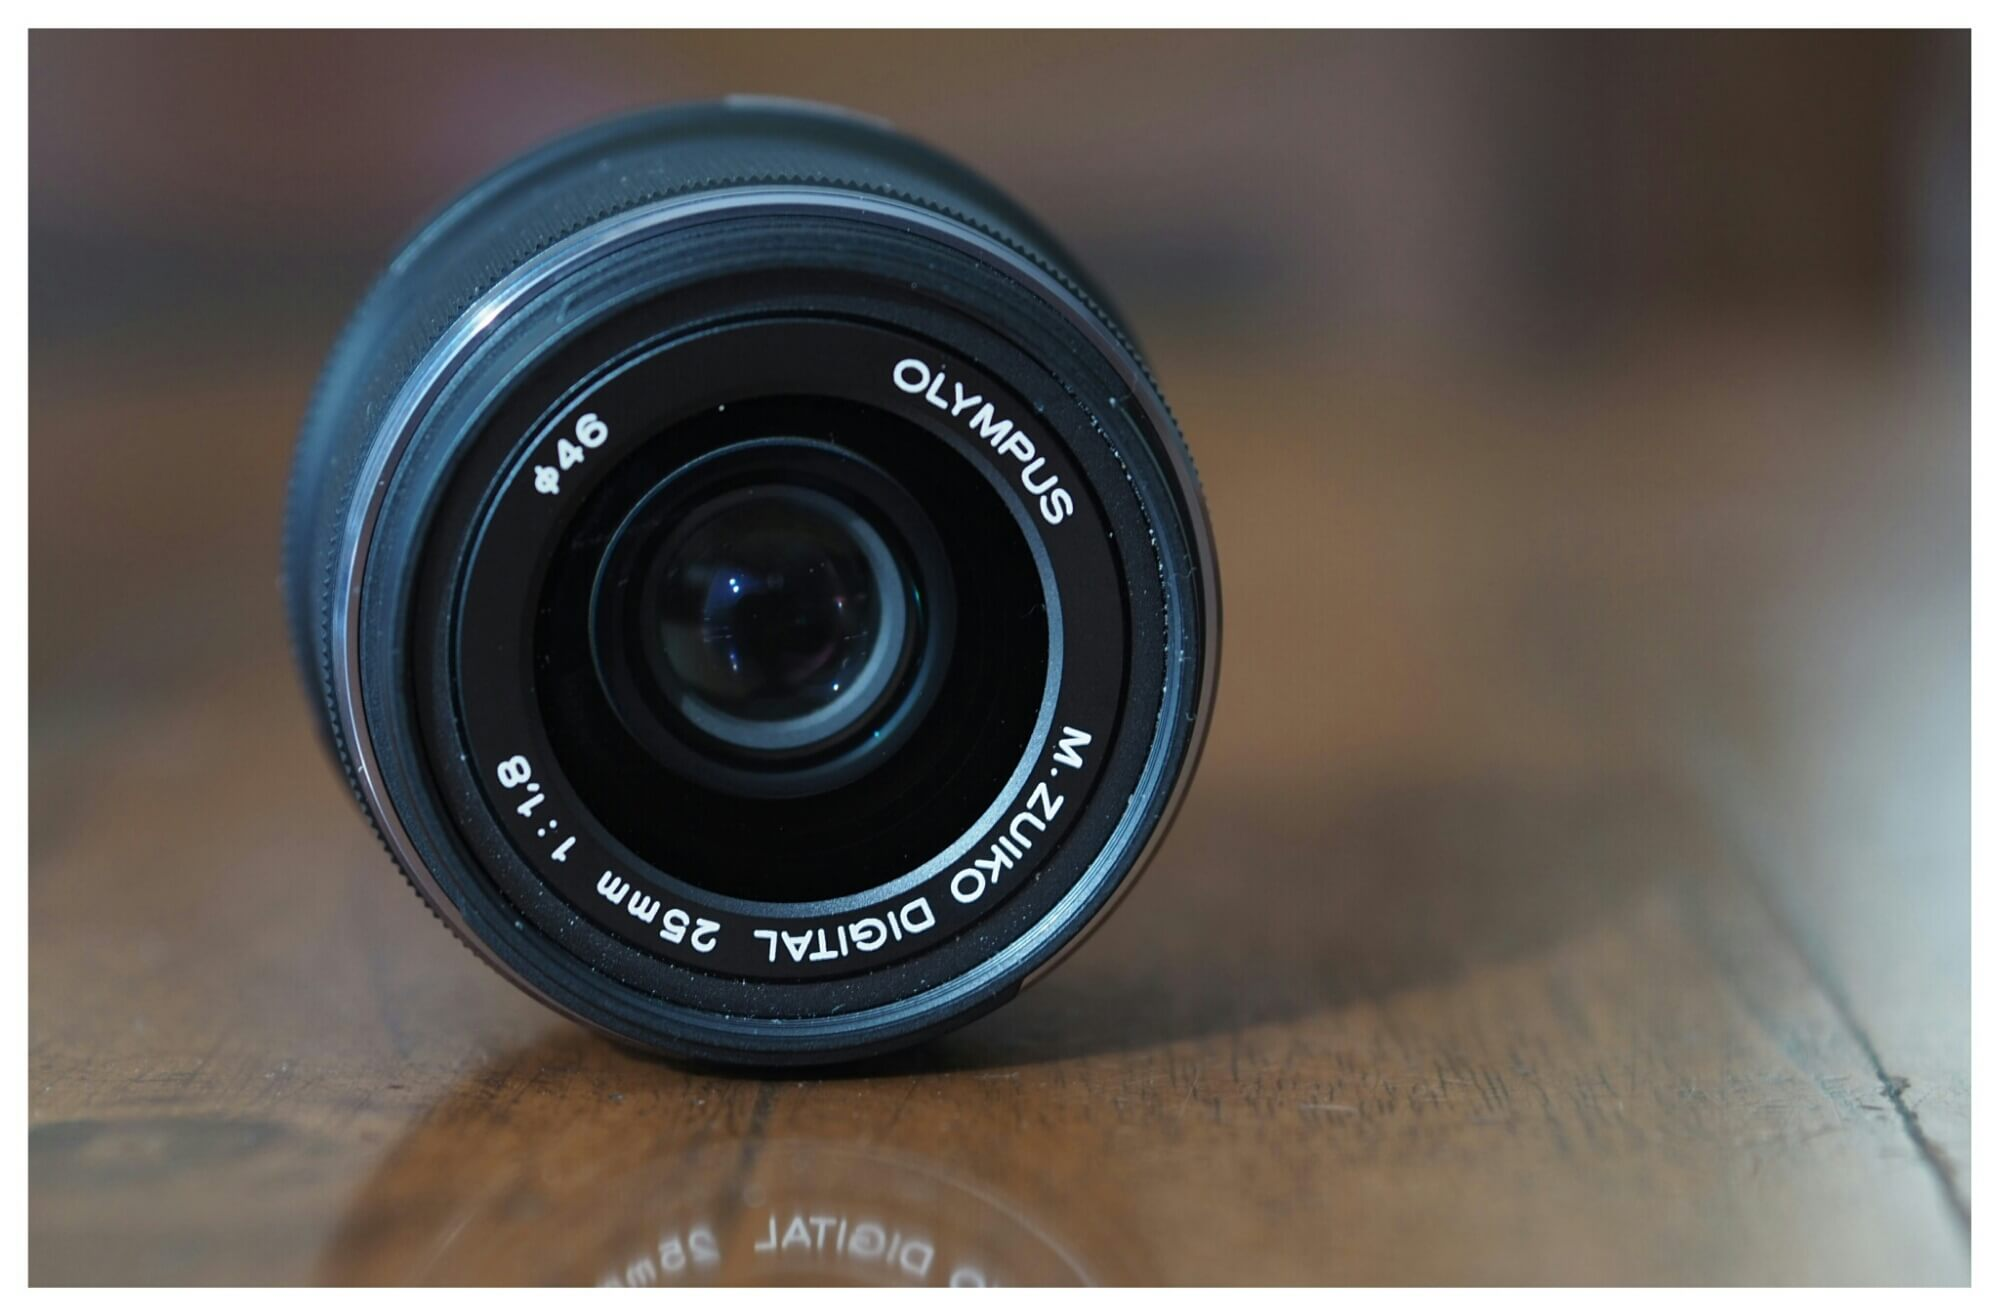 The Versatile Nifty-Fifty – Olympus 25mm f1 8 Lens Review